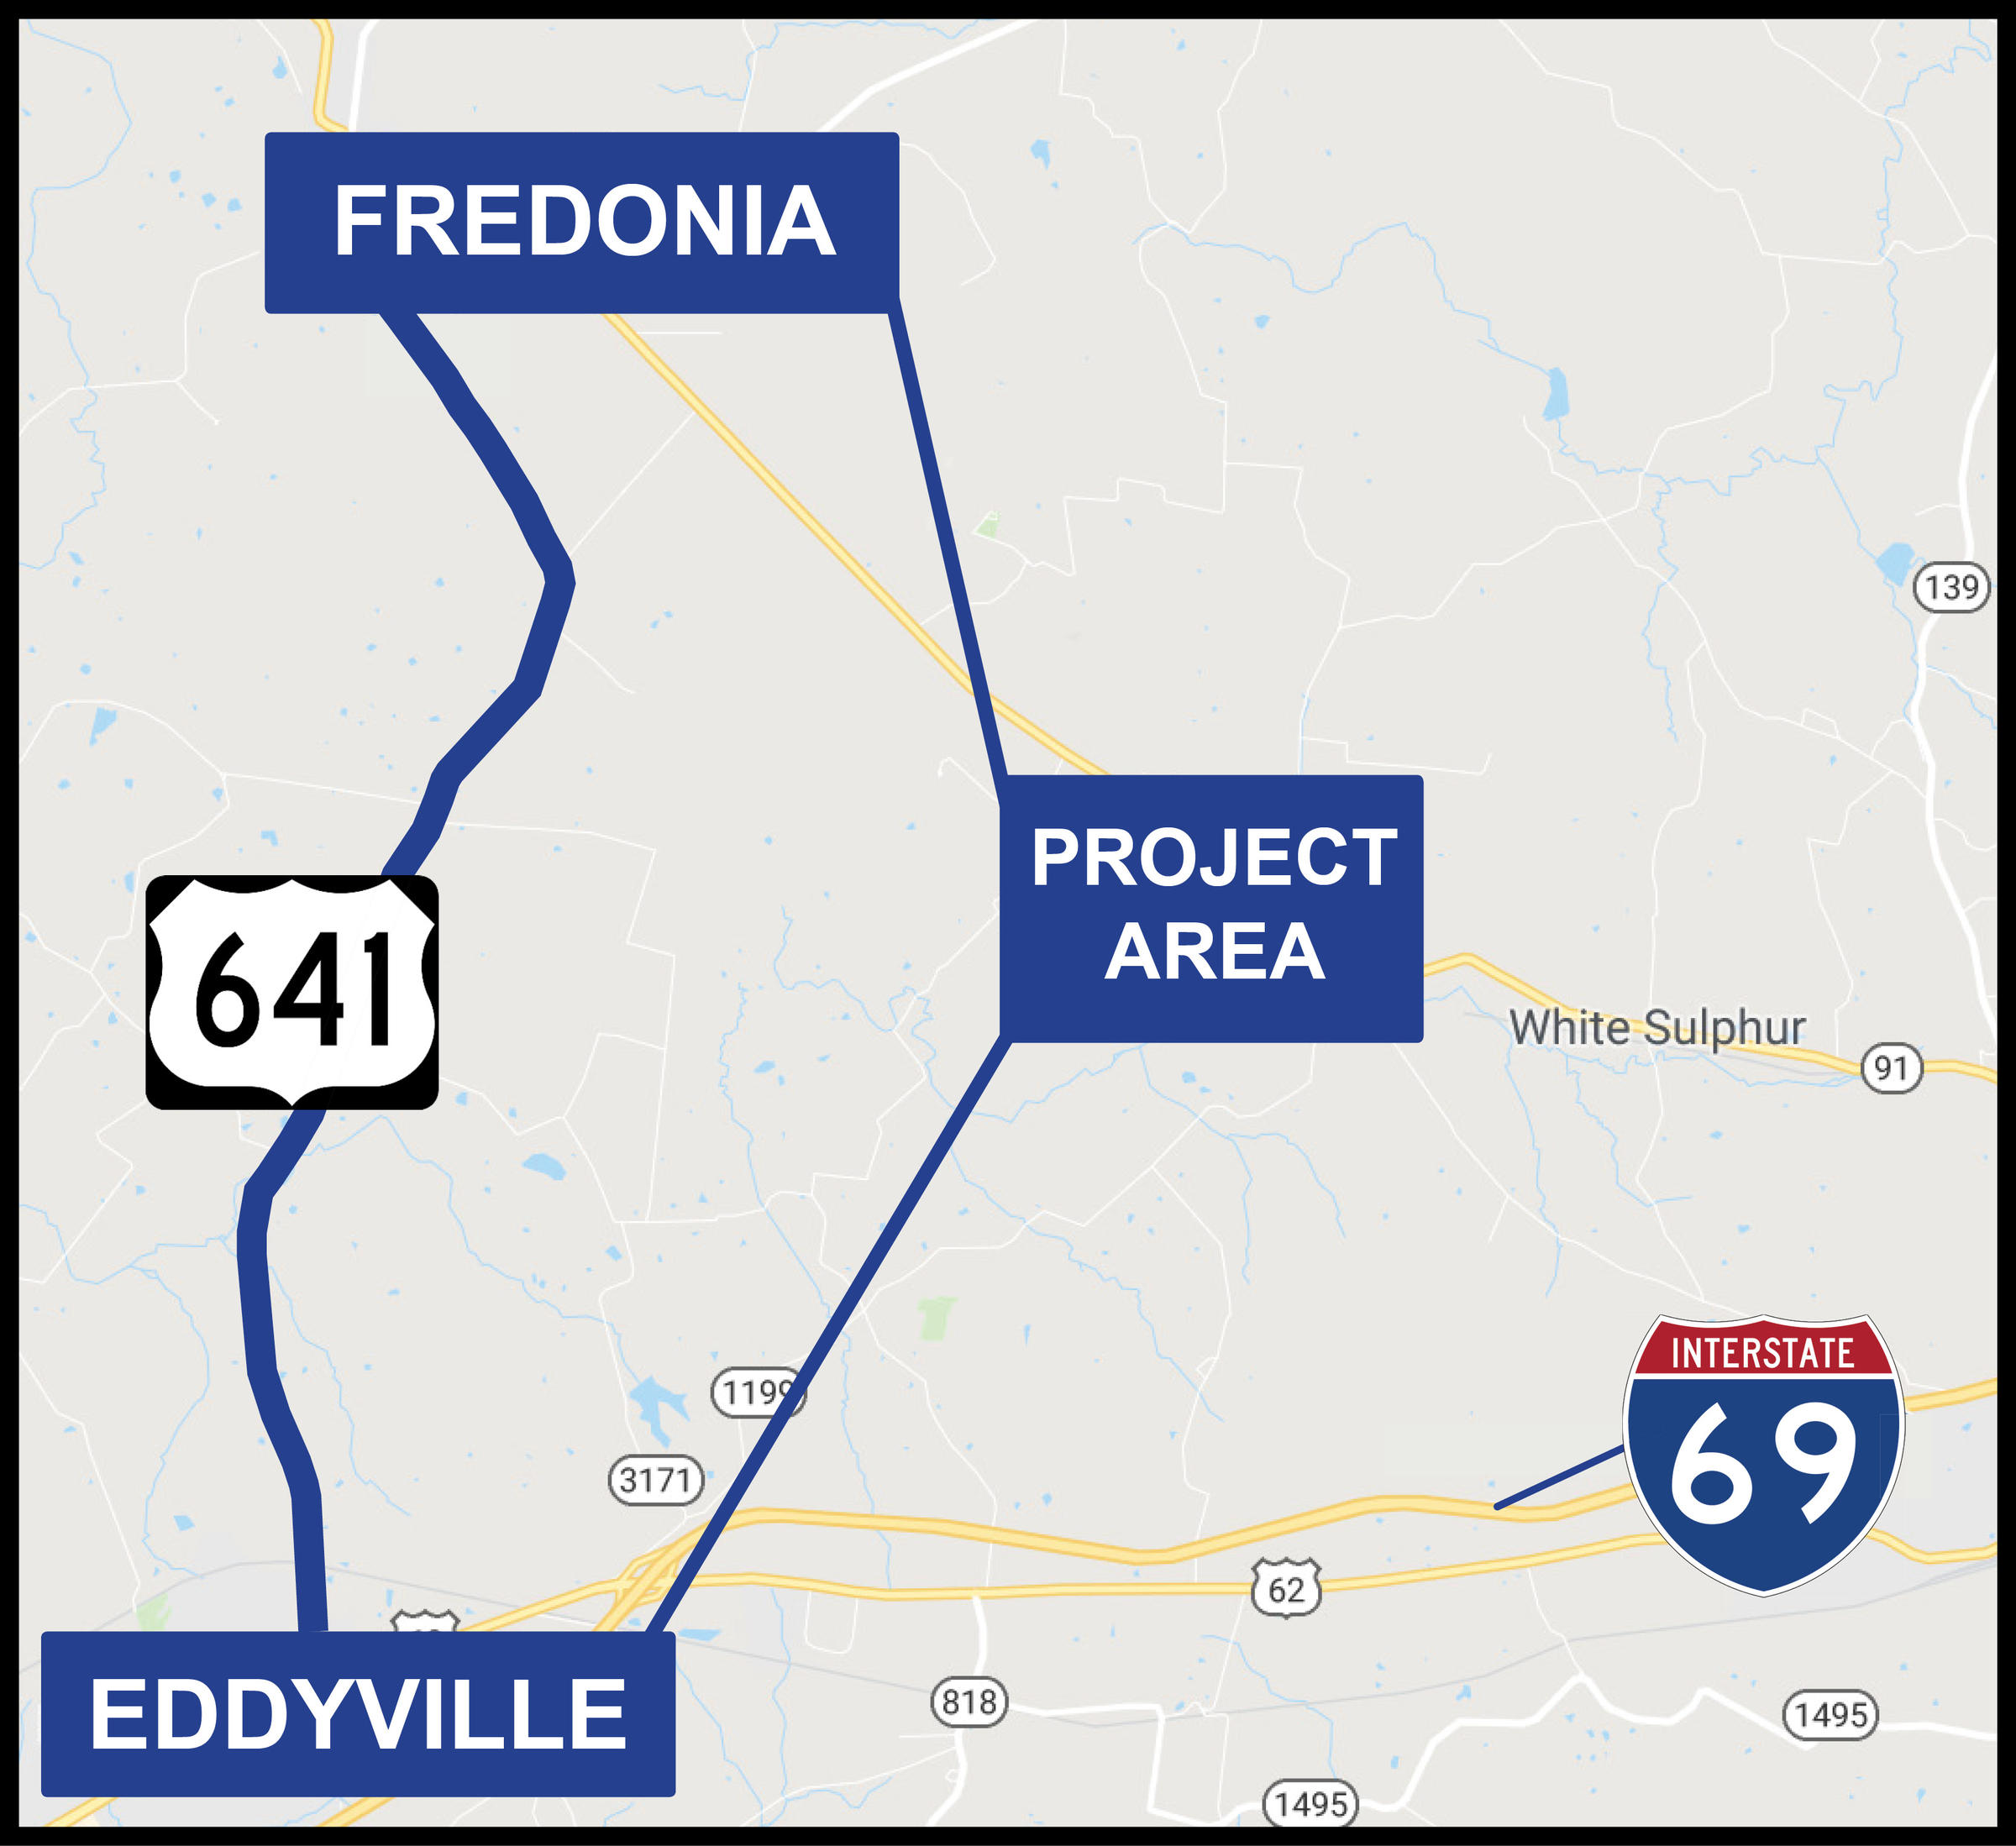 KYTC To Hold Meeting On Alt Route For U.S. 641 Between Fredonia And Kytc Maps on state of kansas highway patrol location maps, indiana department of natural resources maps, wyoming department of transportation maps, archived ohio road maps,